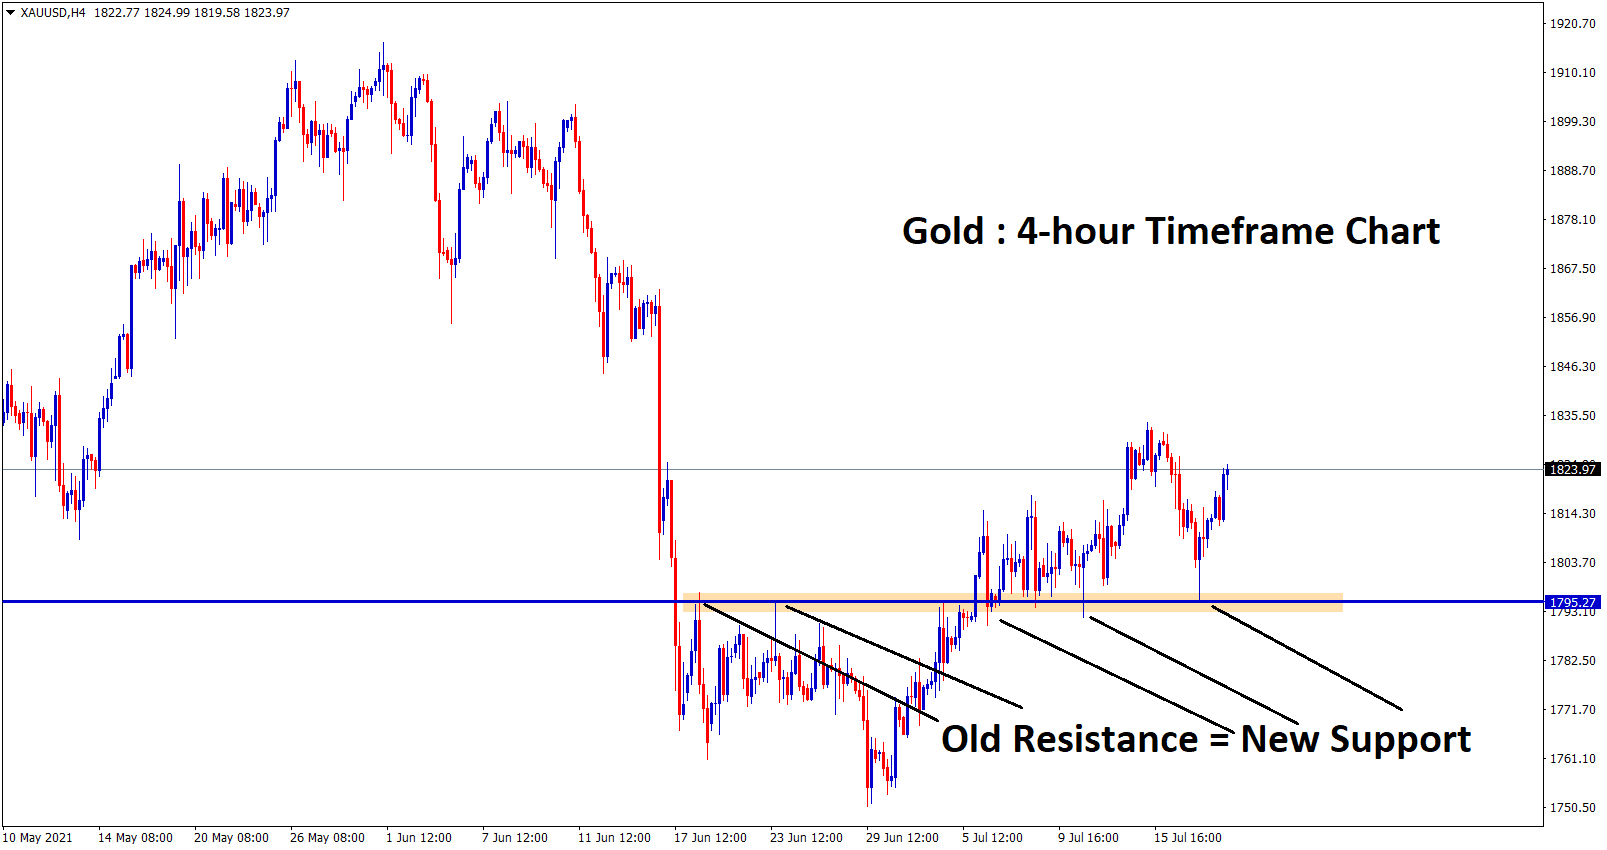 Gold bounces back from the support zone and the market is ranging now